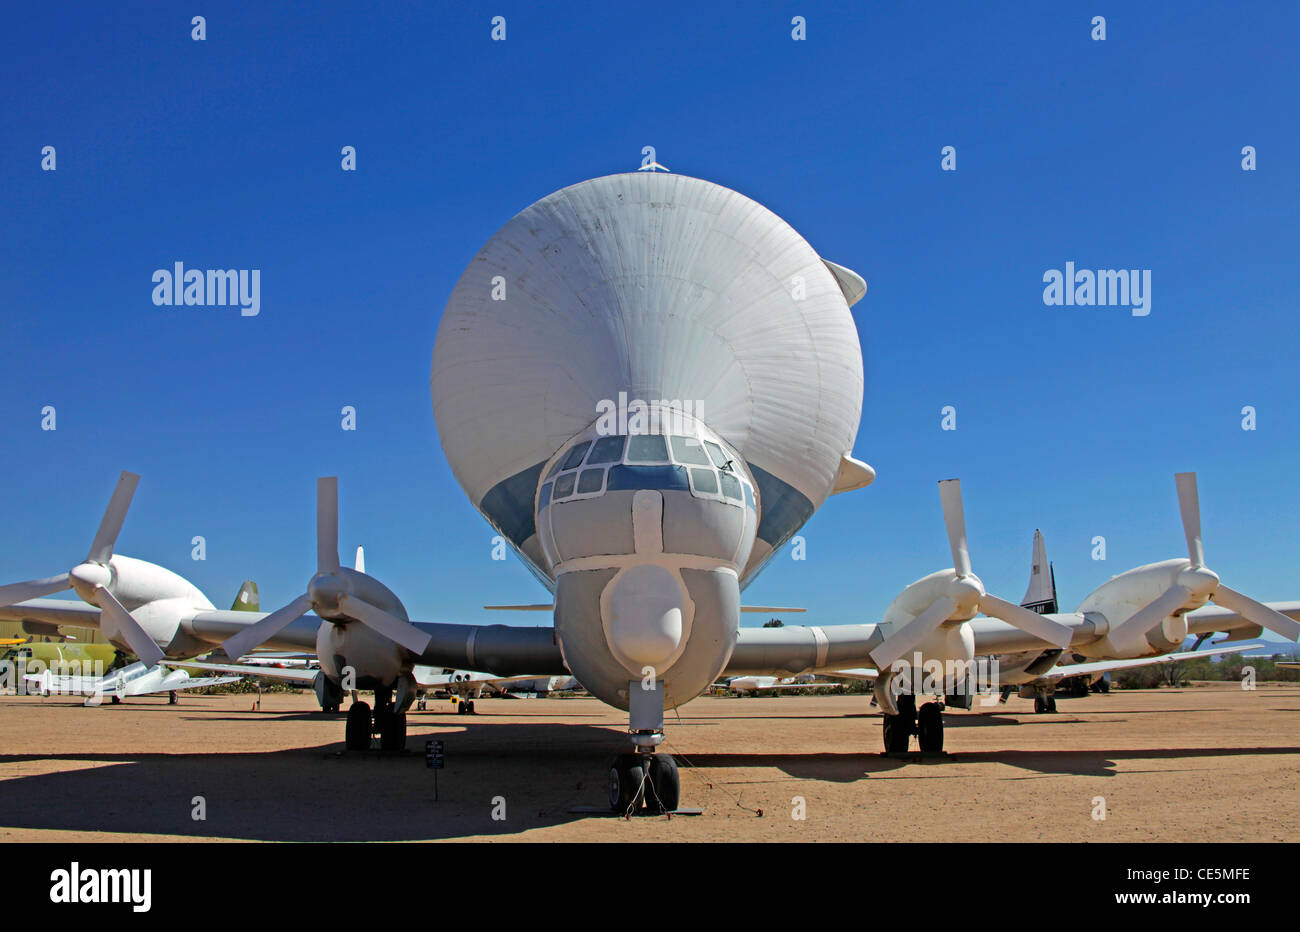 The Super Guppy Cargo Aircraft of NASA on display at Pima Museum - Stock Image